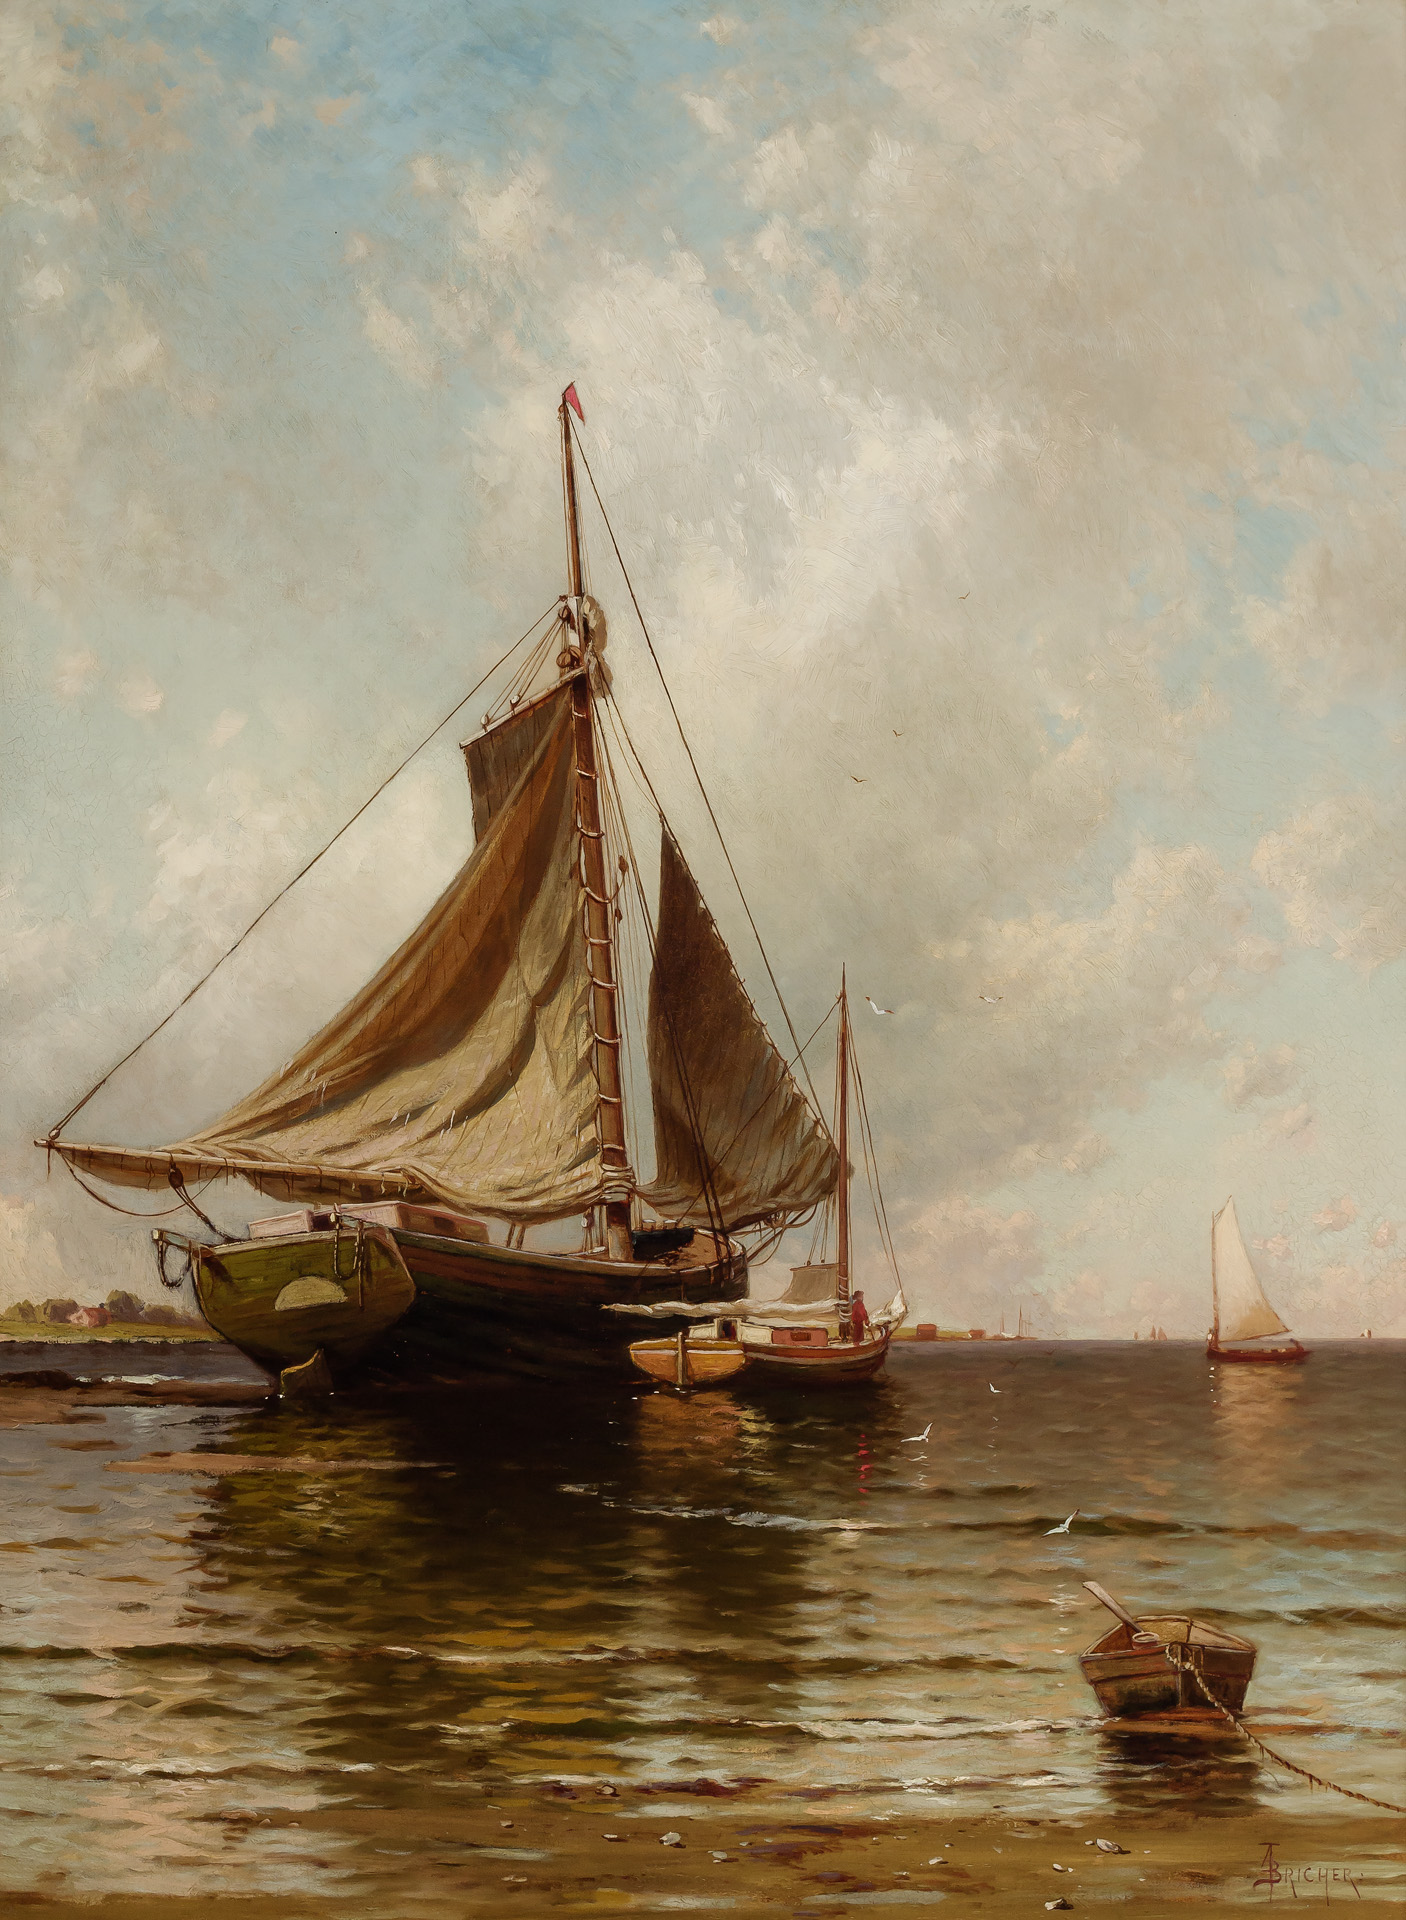 ALFRED THOMPSON BRICHER, American (1837-1908), The Open Coast, oil on canvas, signed, 38 x 28 inches, Estimate:$25,000-35,000